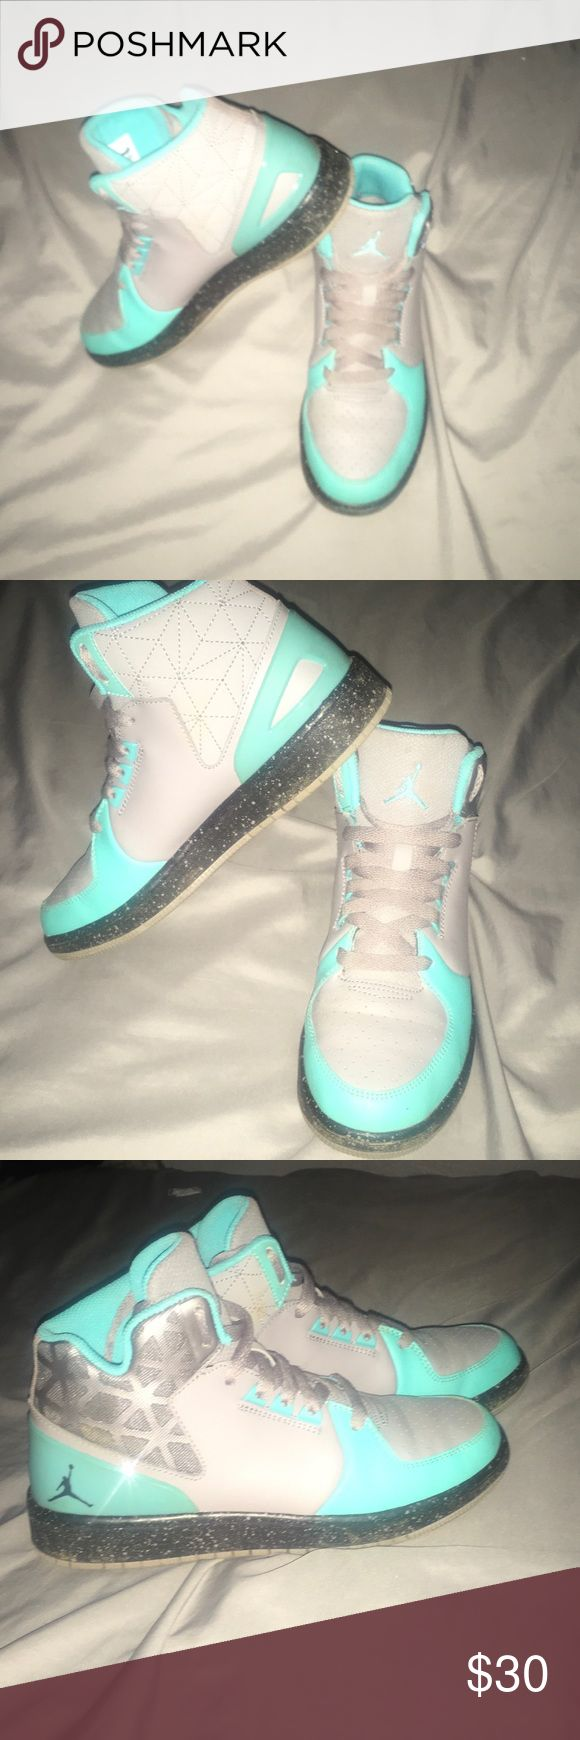 Kids Basketball shoes 6 Youth / High Top/ Jordan Basketball shoe/ teal and gray color/ Jordan Shoes Sneakers